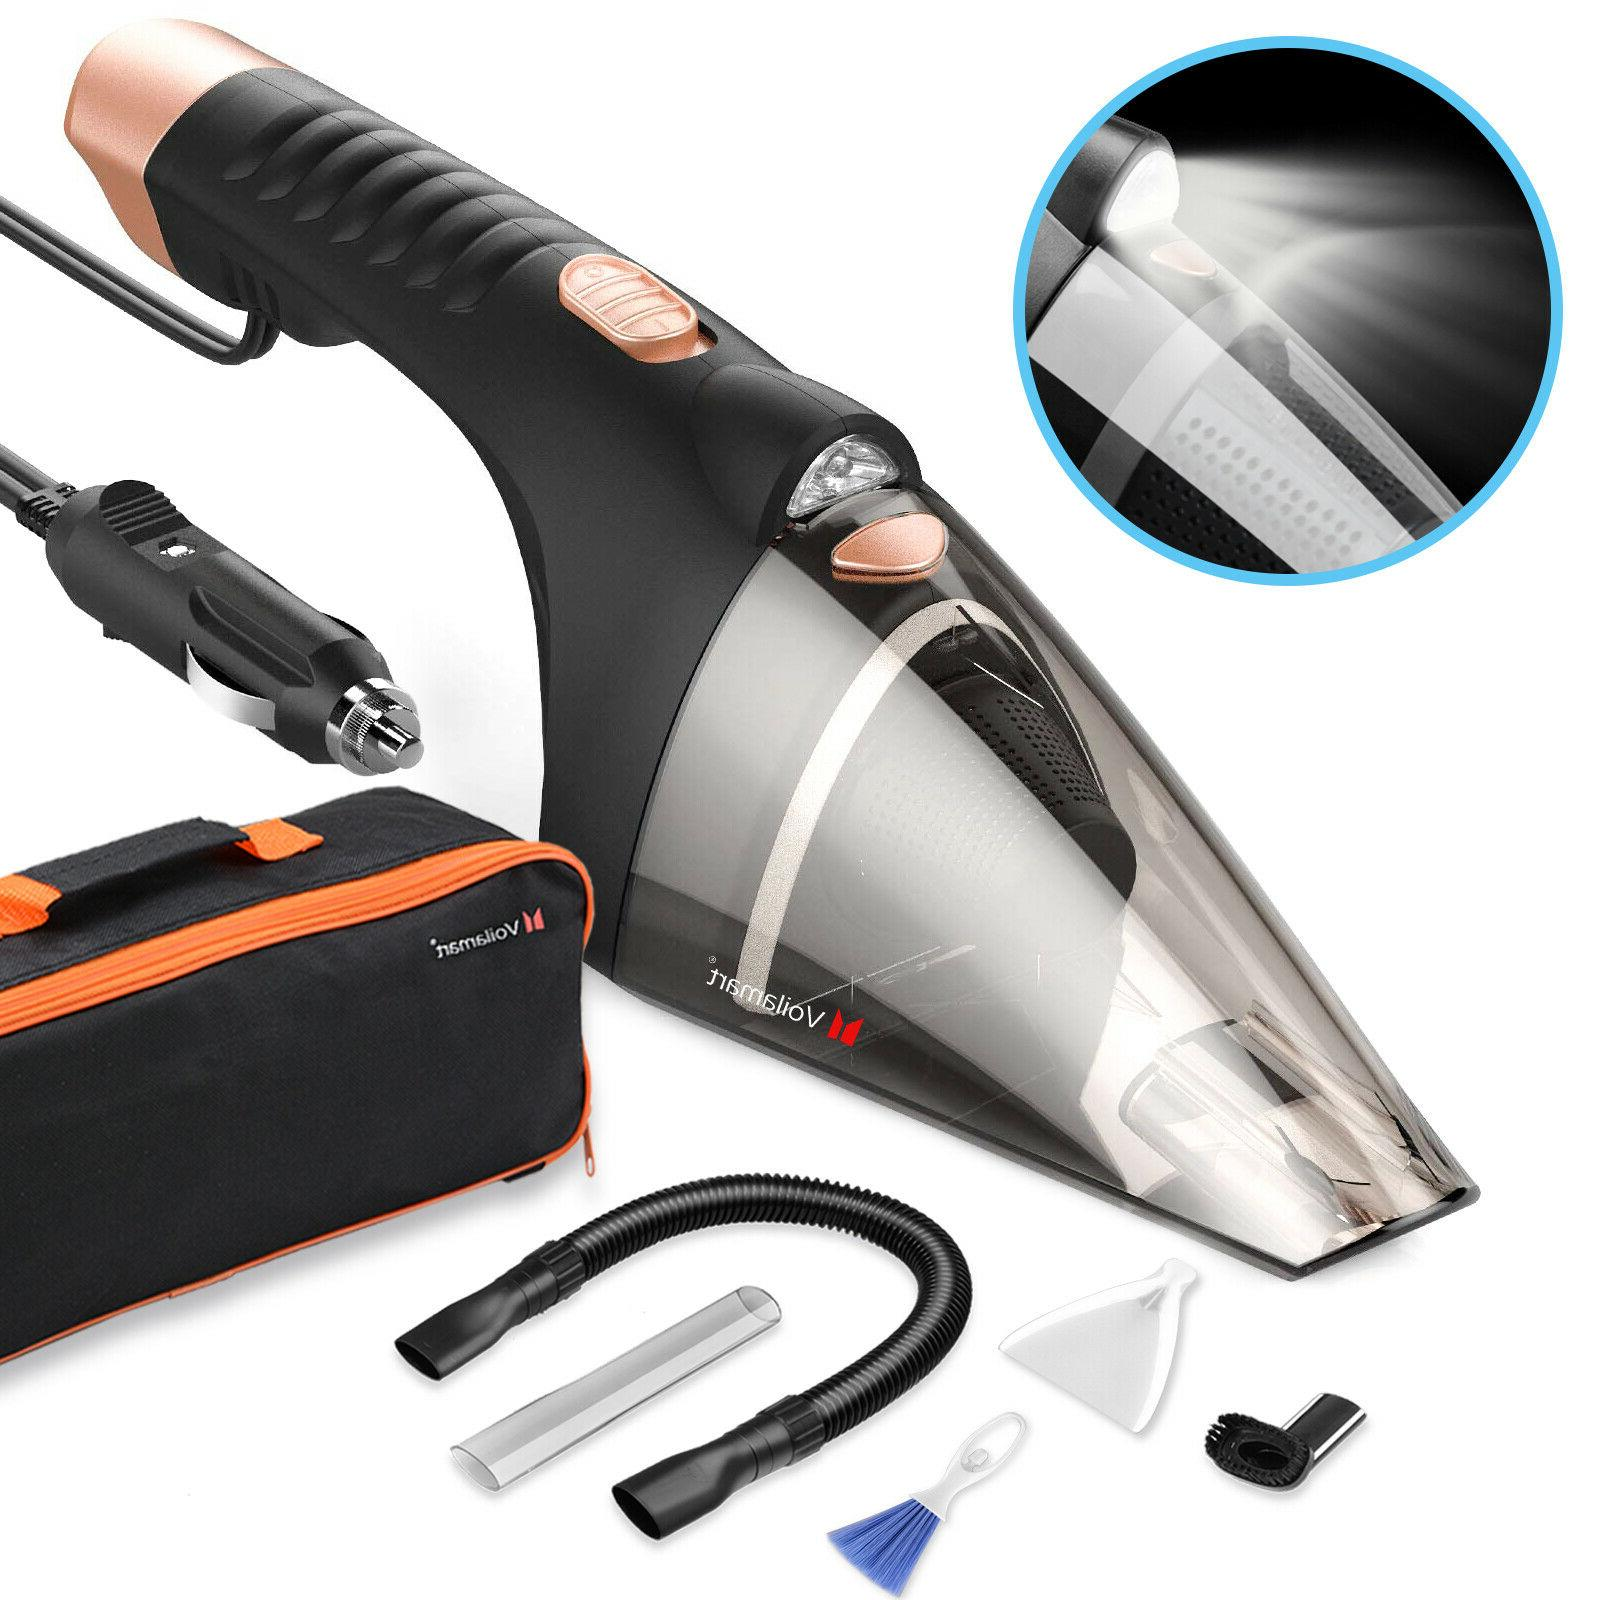 Car Vacuum Hand Held Dry Portable Duster